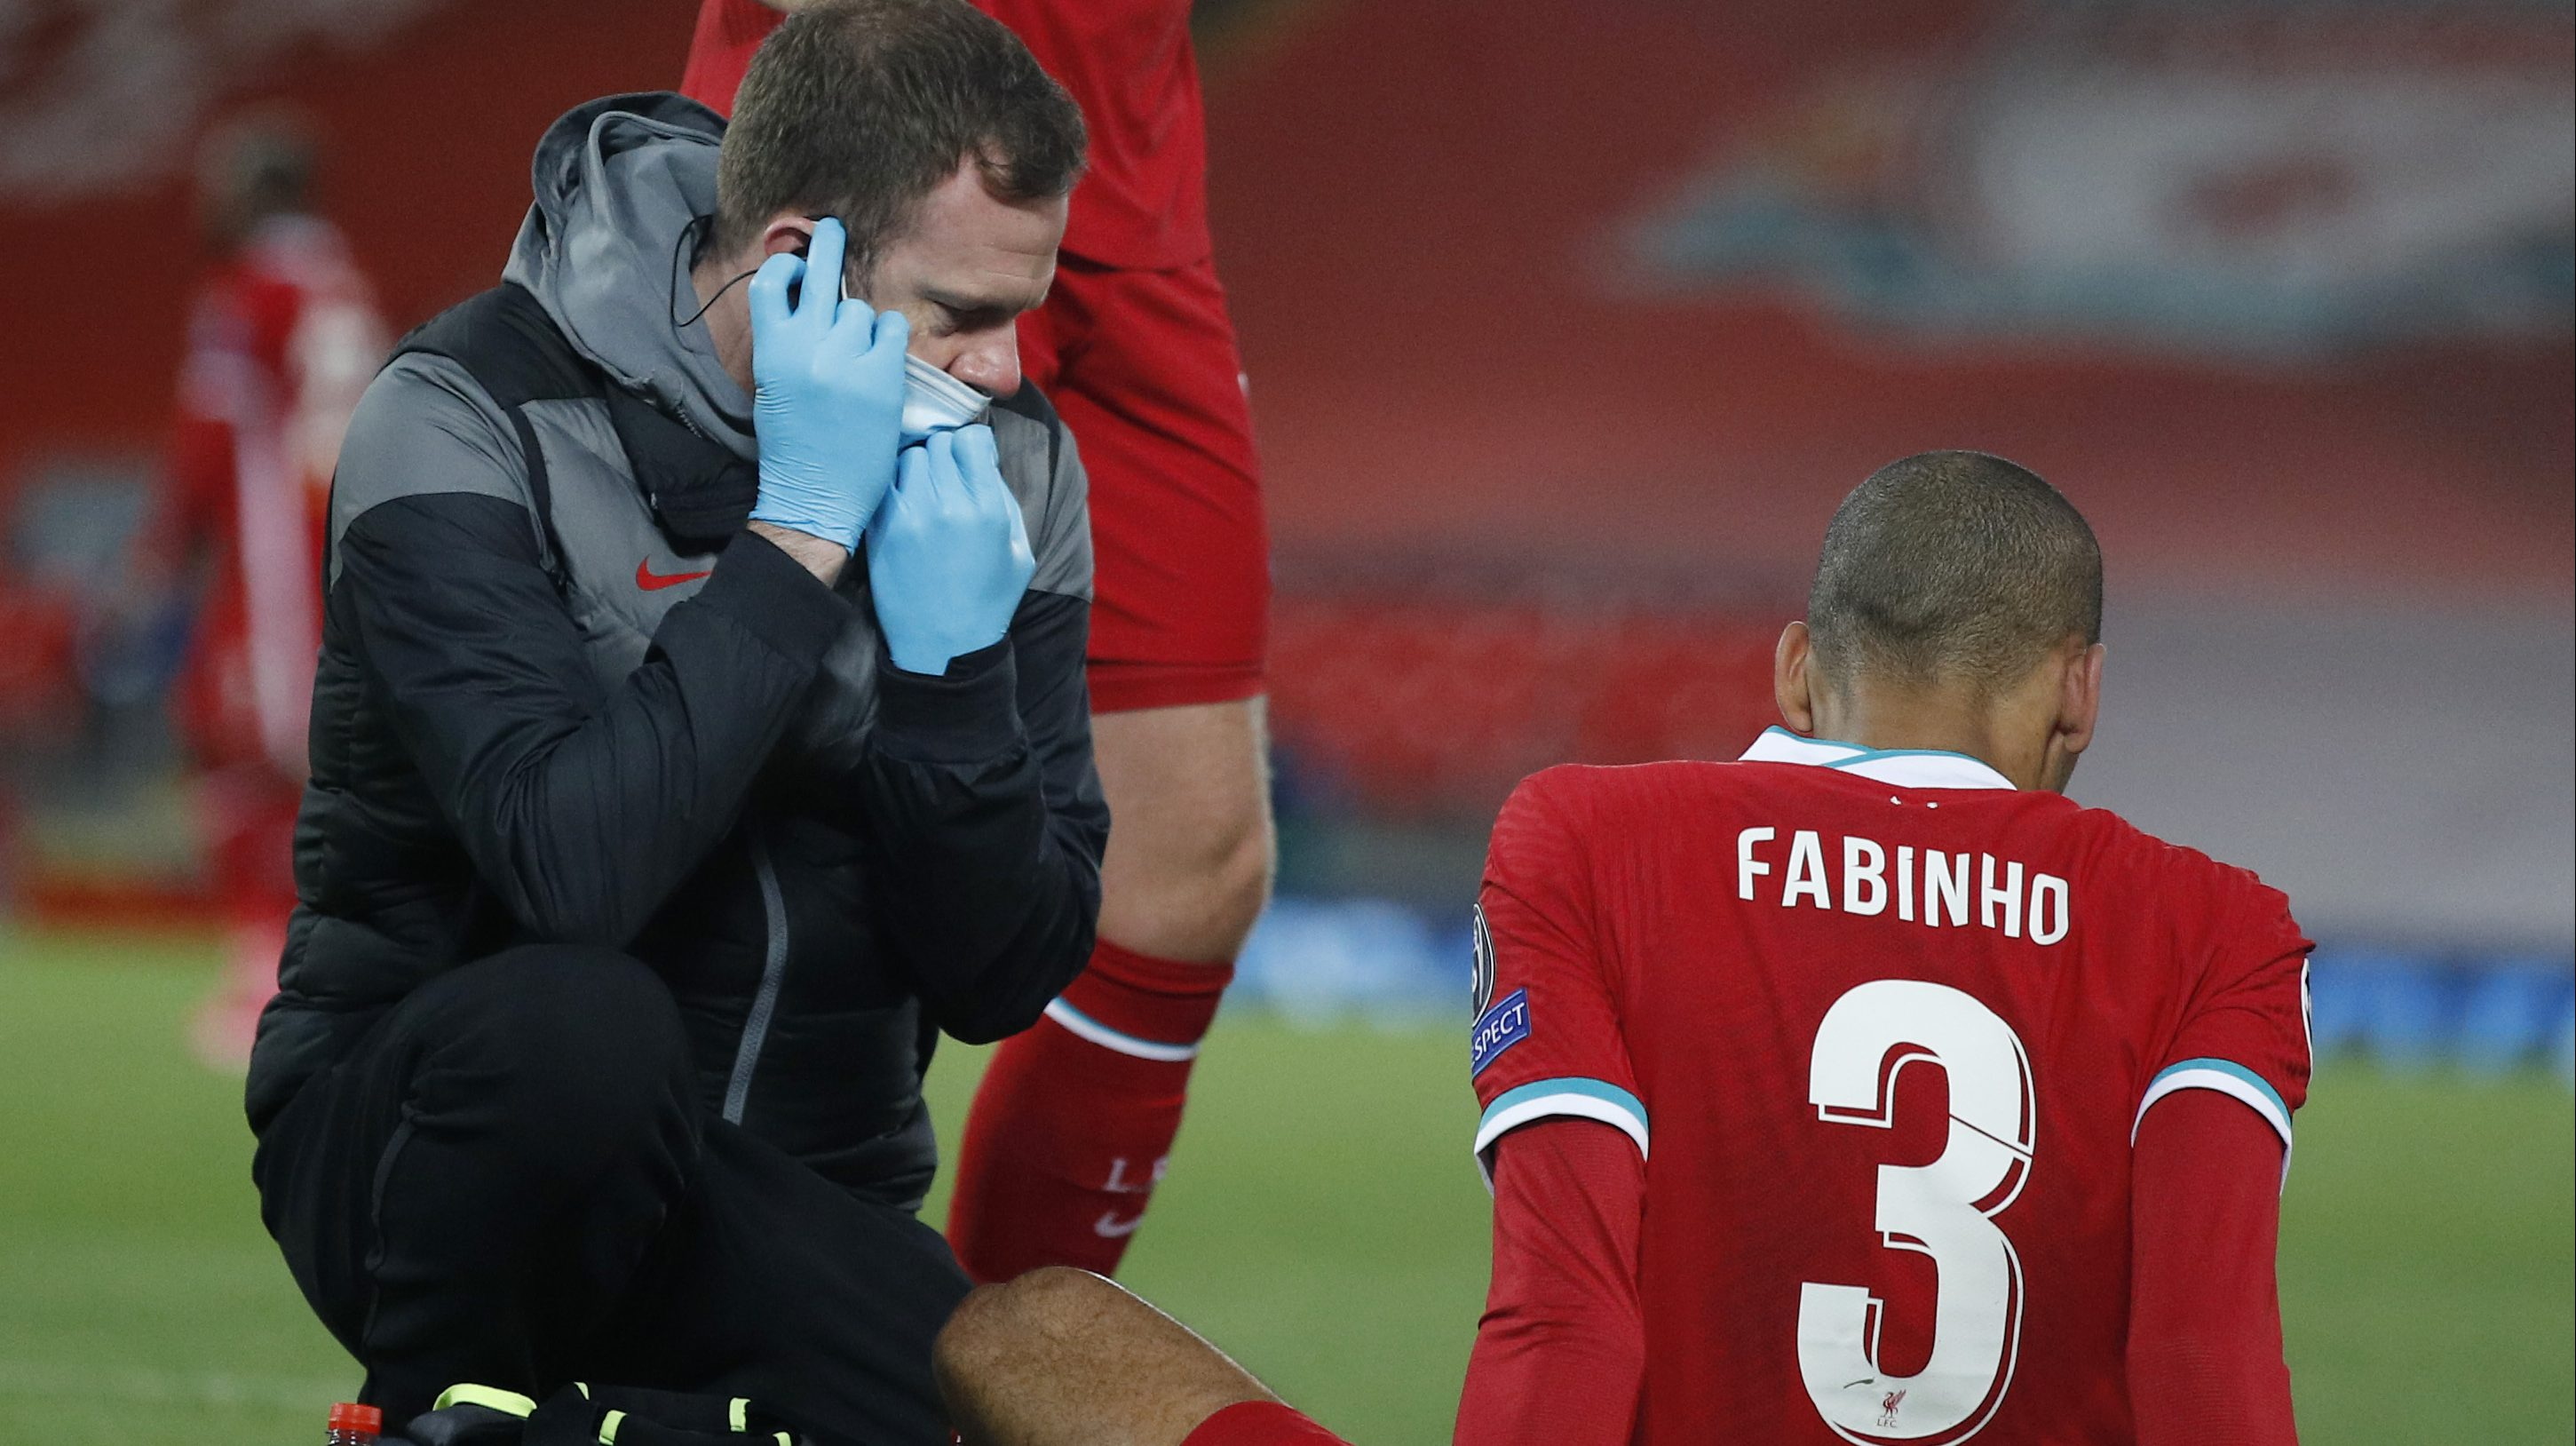 Fabinho injury update: Klopp says 'just a matter of how long' of absence